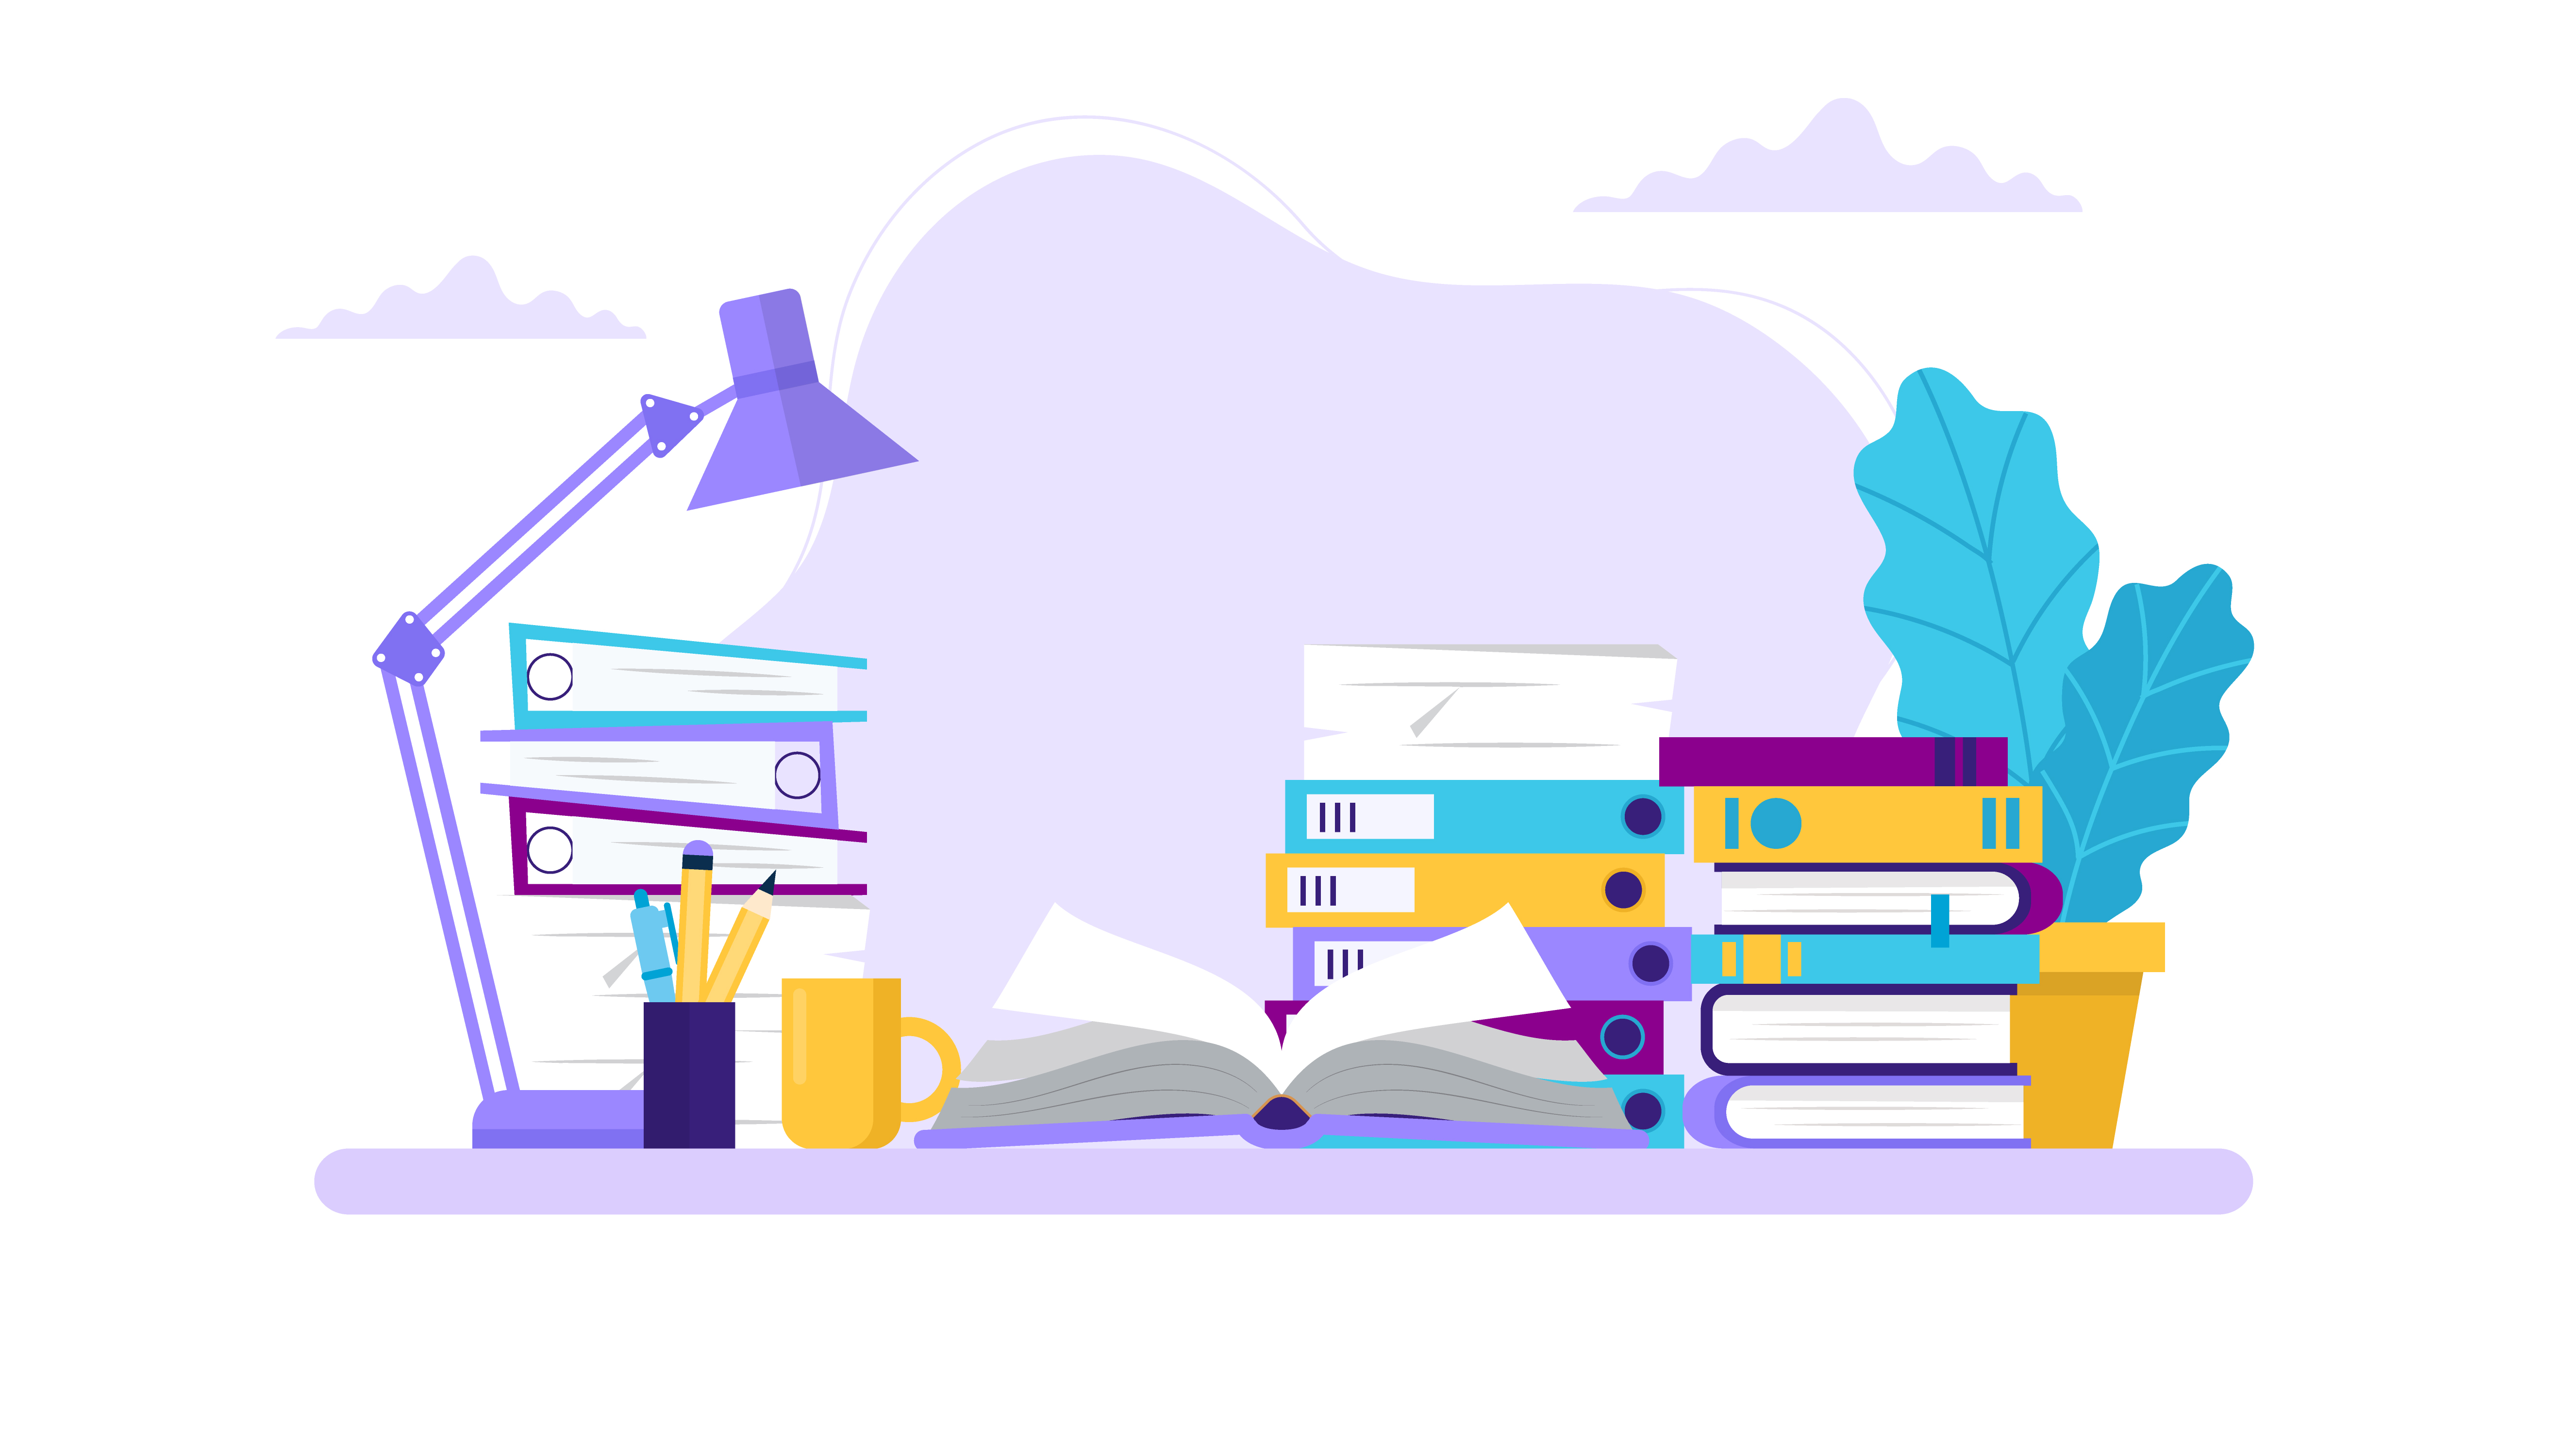 Studying, table with books and different folders. Concept illustration for learning, education, office work, school or university. Vector illustration in flat style